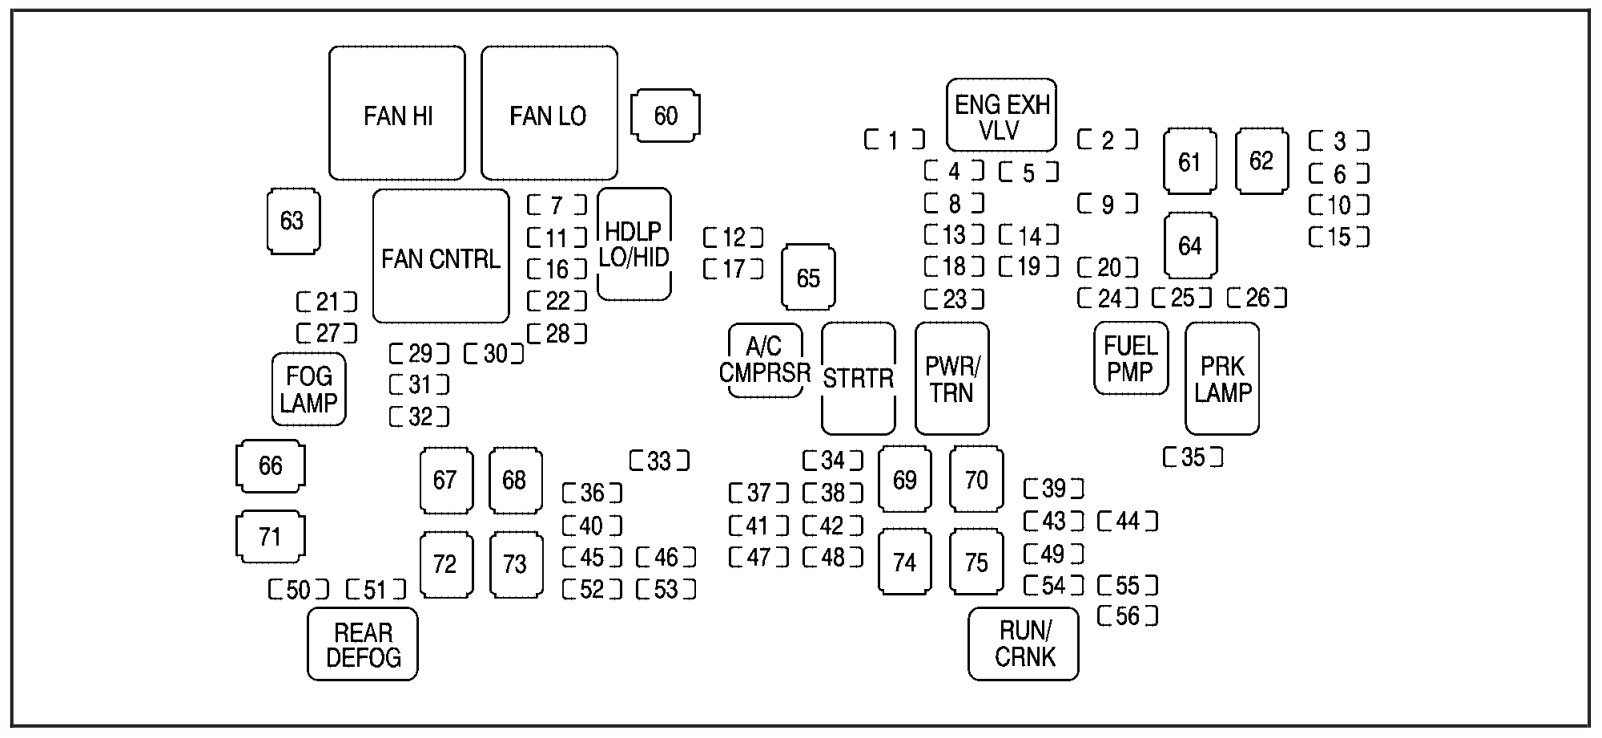 hight resolution of 2007 duramax fuse box wiring diagrams long2007 duramax fuse box electrical wiring diagram 2007 duramax fuse